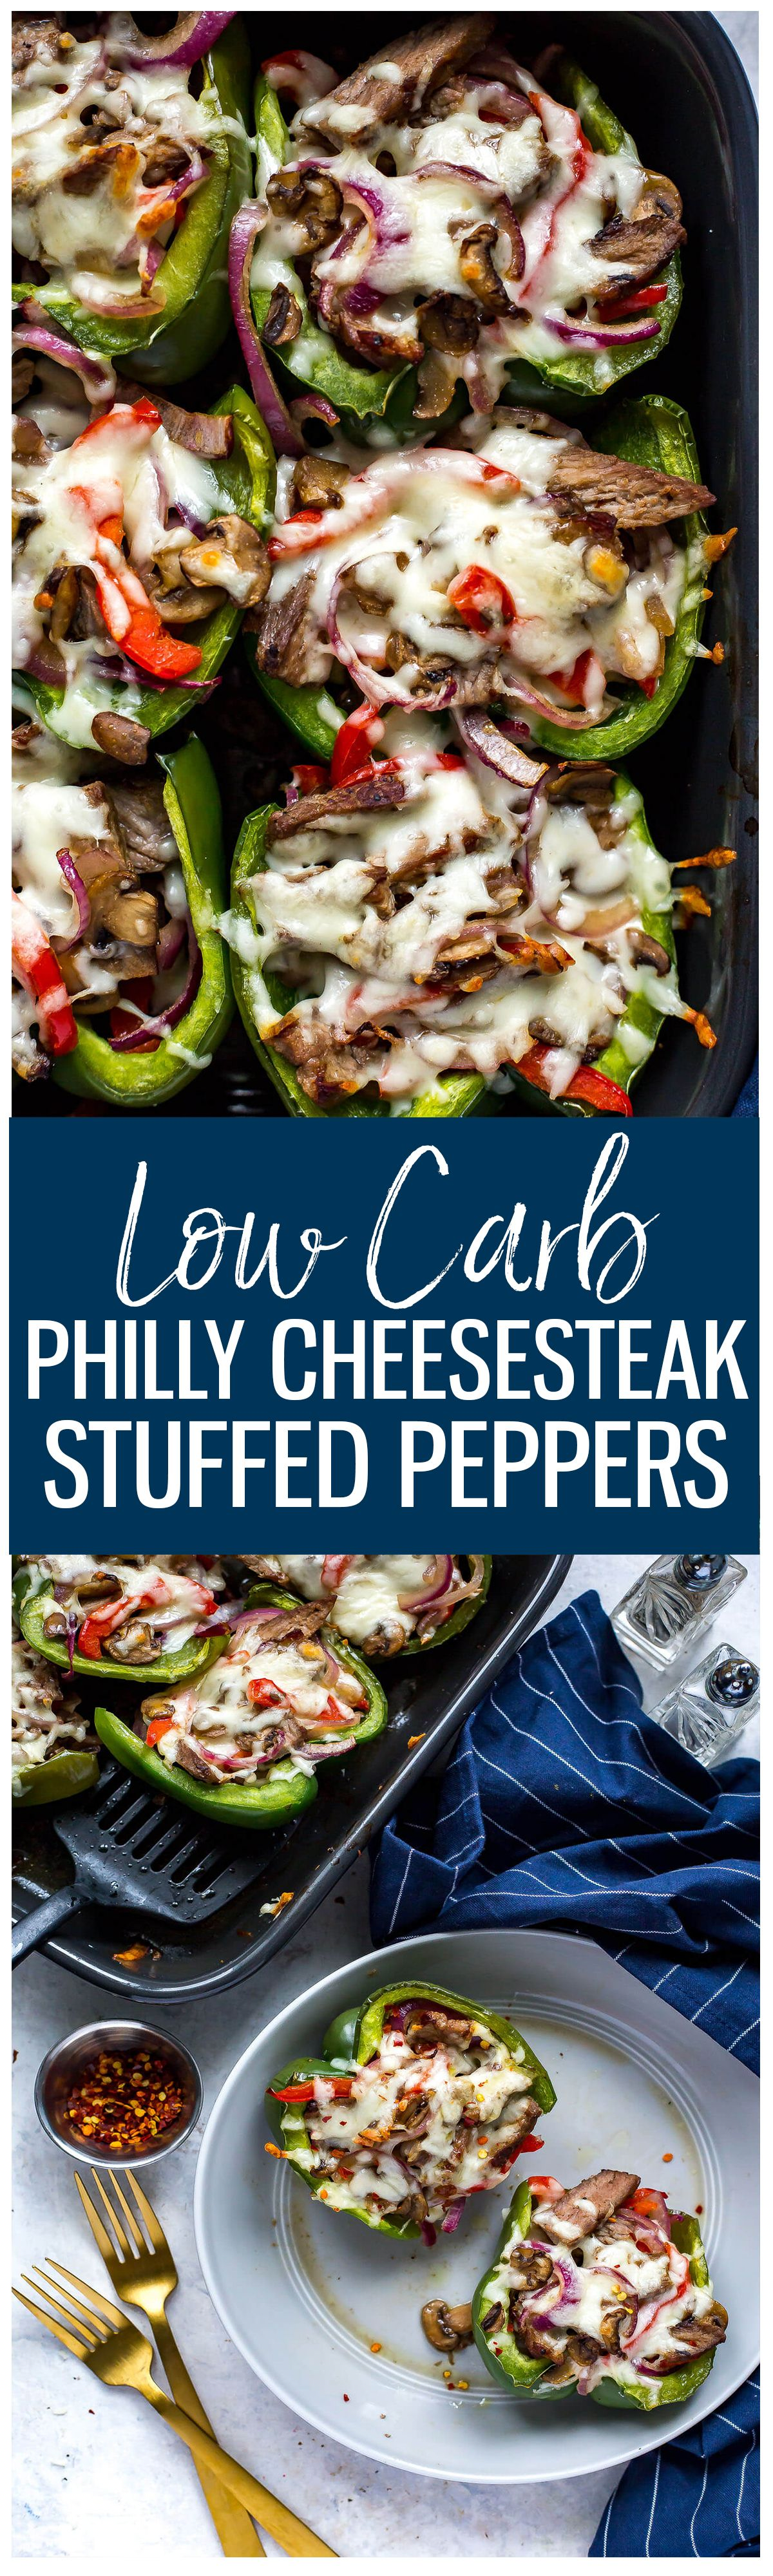 Philly Cheesesteak Stuffed Peppers | The Girl on Bloor